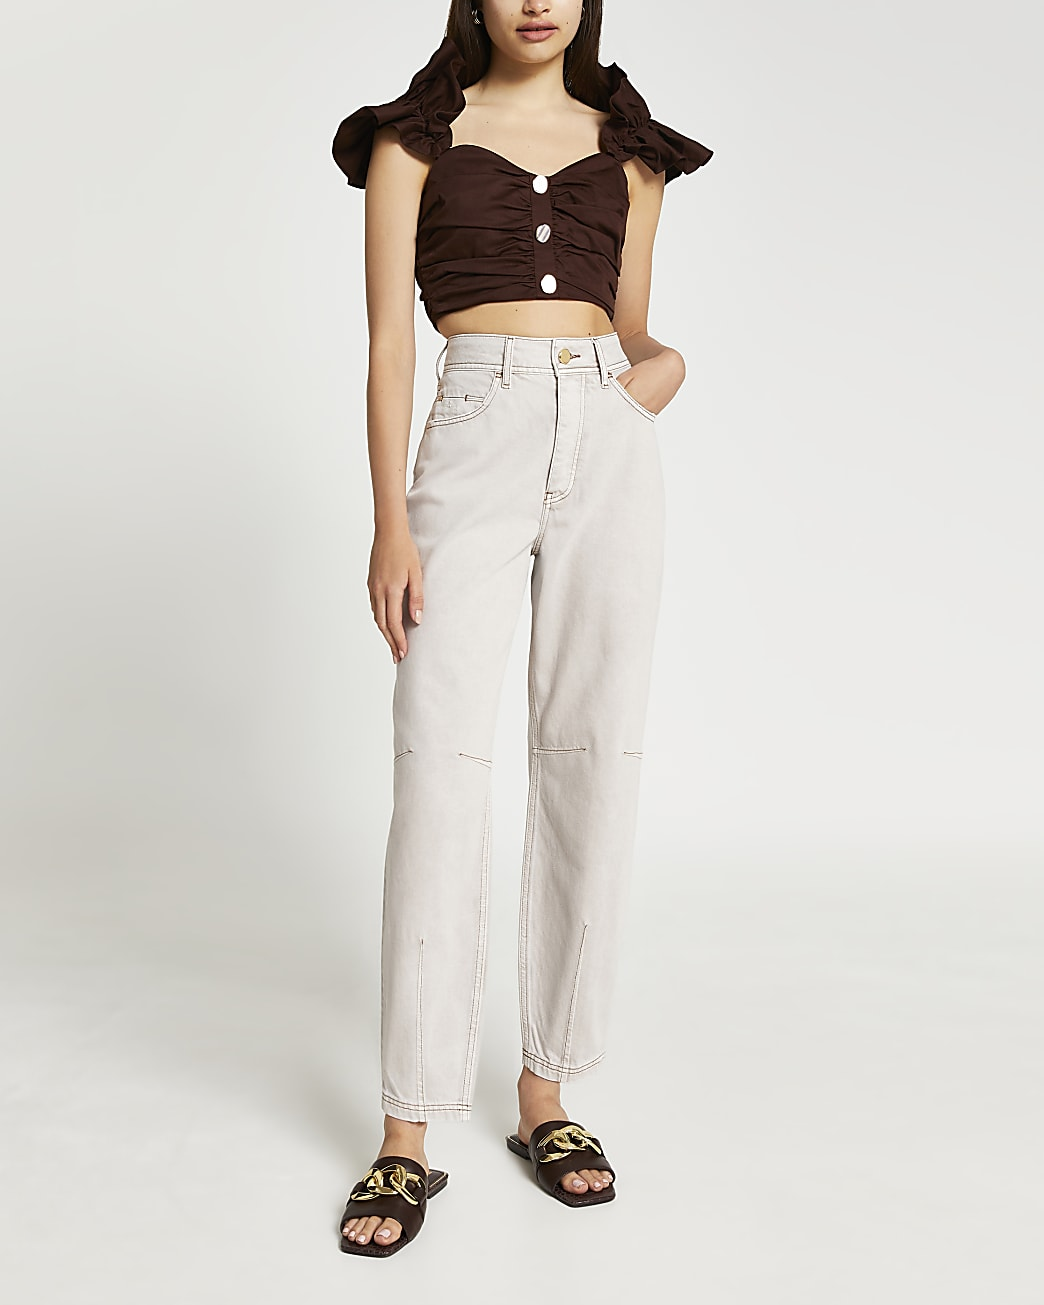 Brown ruffle strap ruched crop top